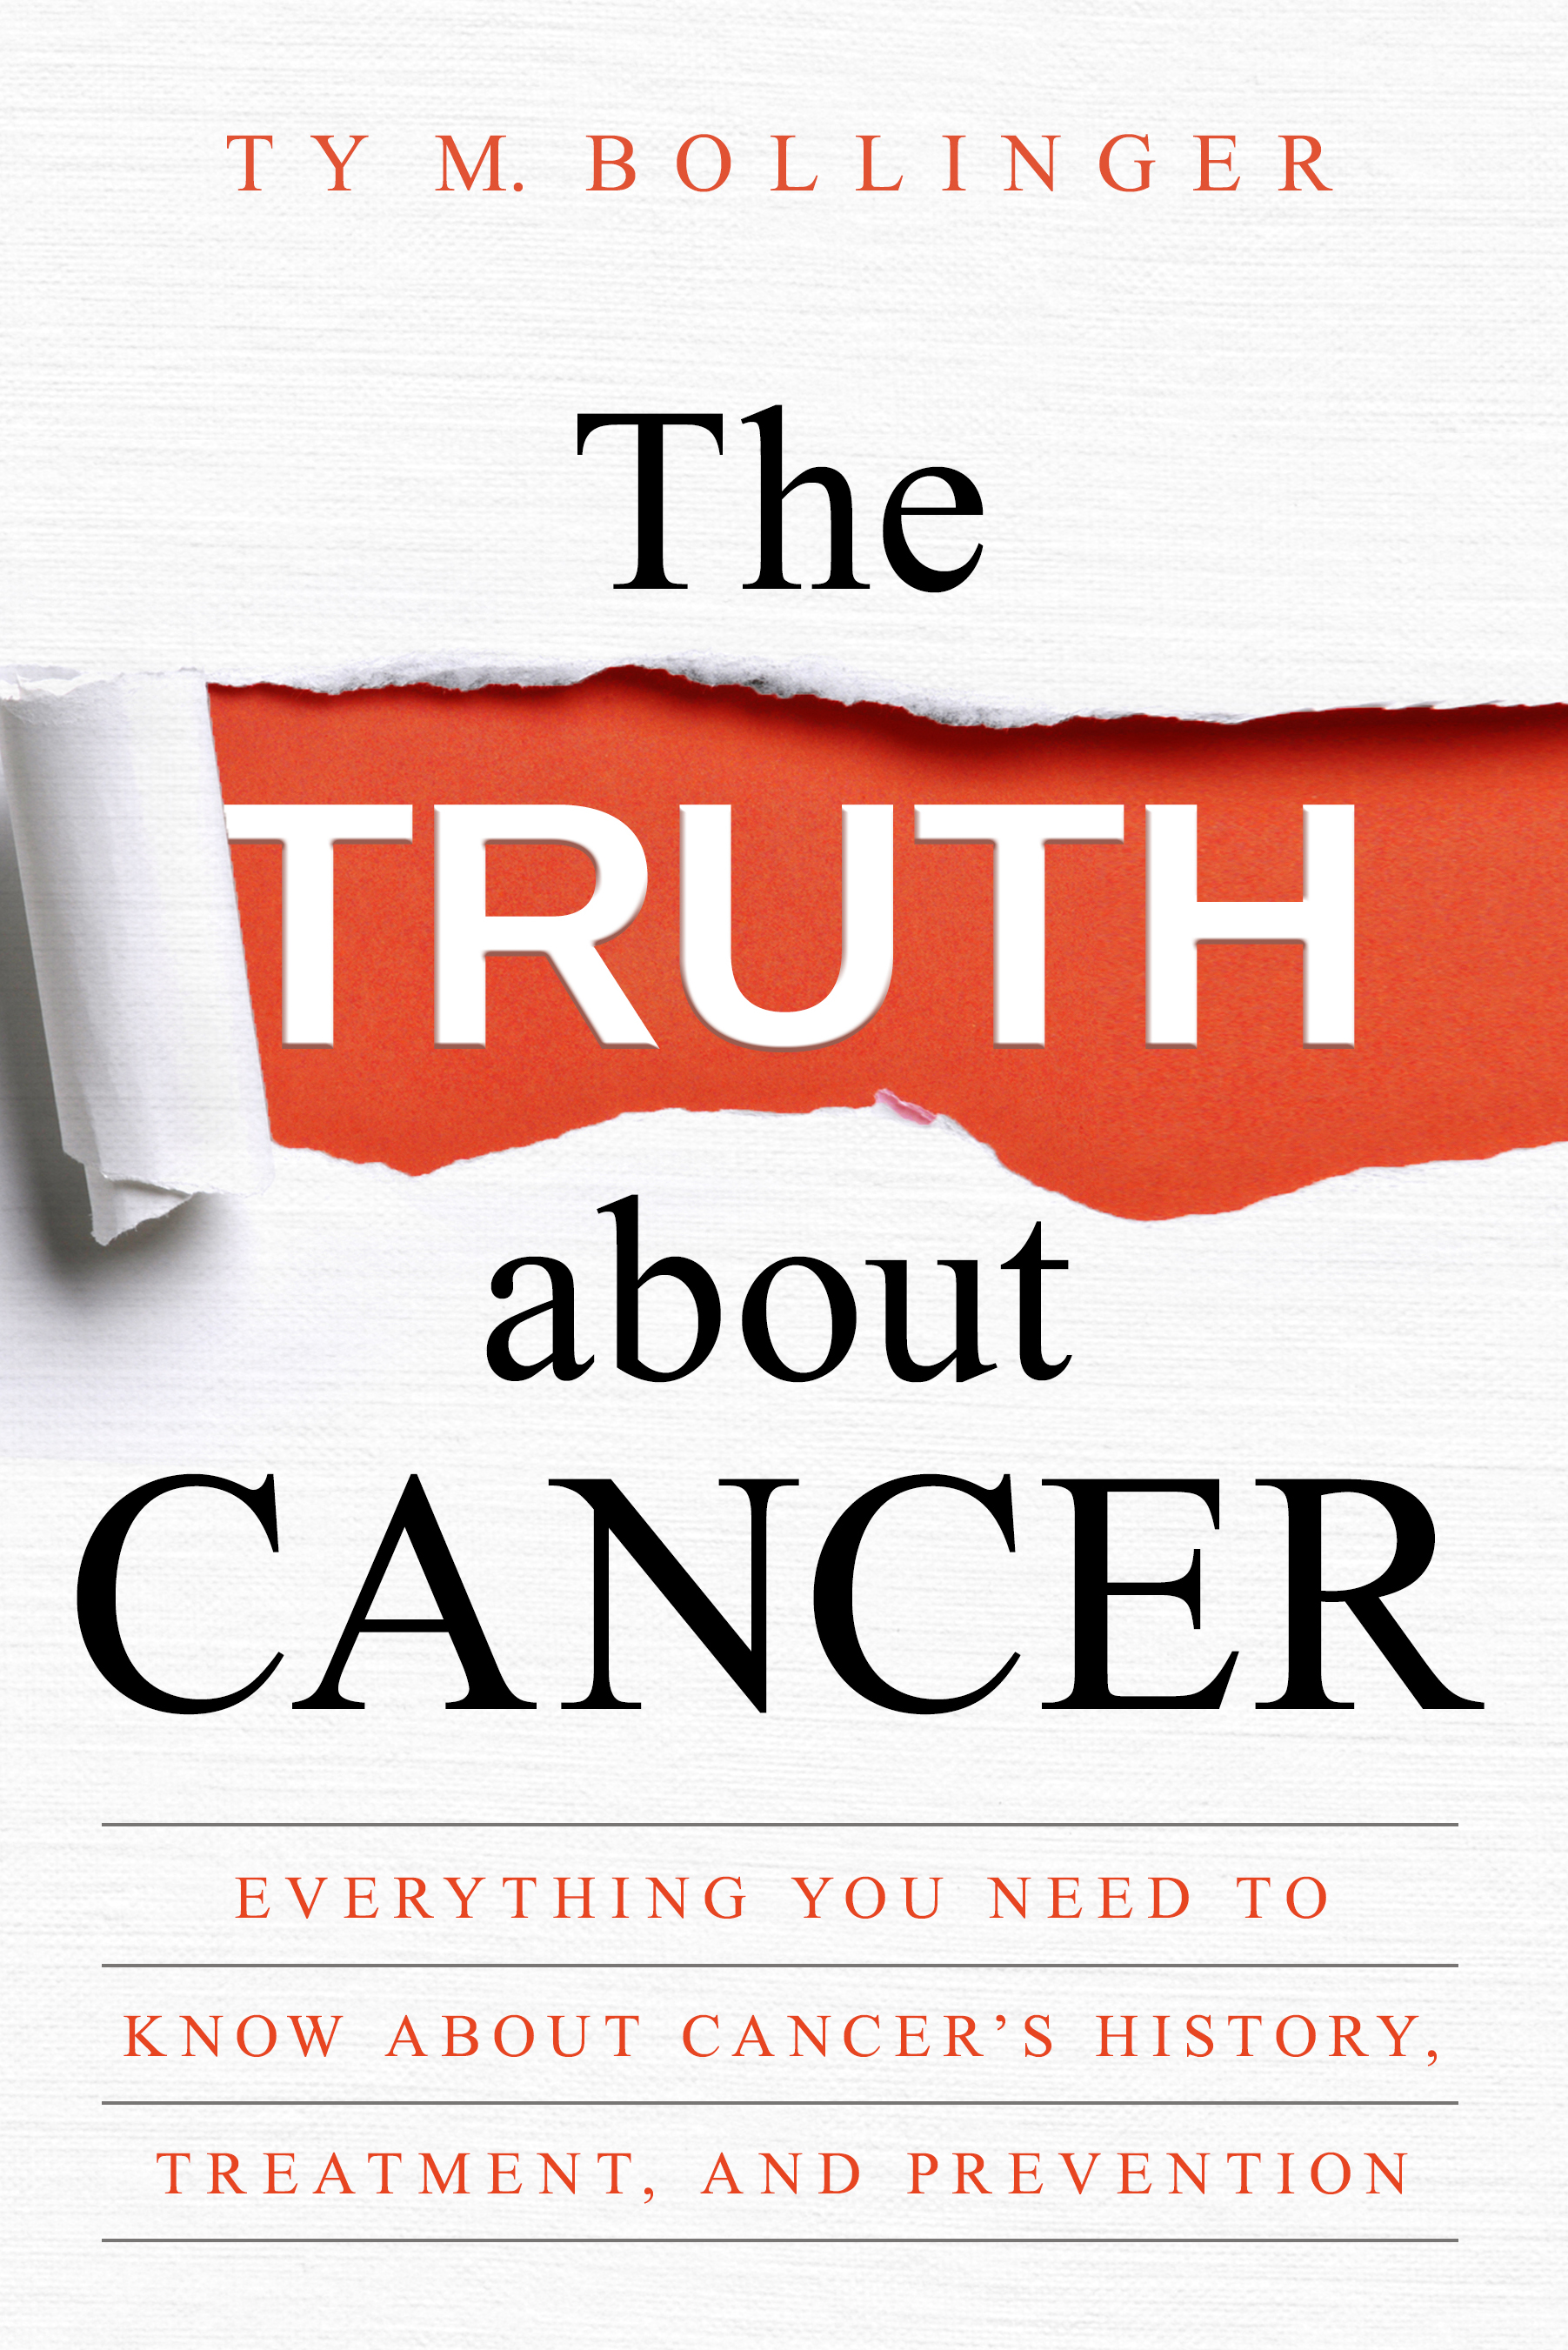 The Truth About Cancer. What Is Collaborative Editing. Top Savings Account Rates Cisco Systems Phone. Mediterranean Cruise Destinations. List Of Lung Diseases And Disorders. Bankruptcy Chapter 13 Trustee. Dish High Speed Internet Service. Backache Before Period Buy Hair Removal Laser. How Much Is A Anytime Fitness Gym Membership